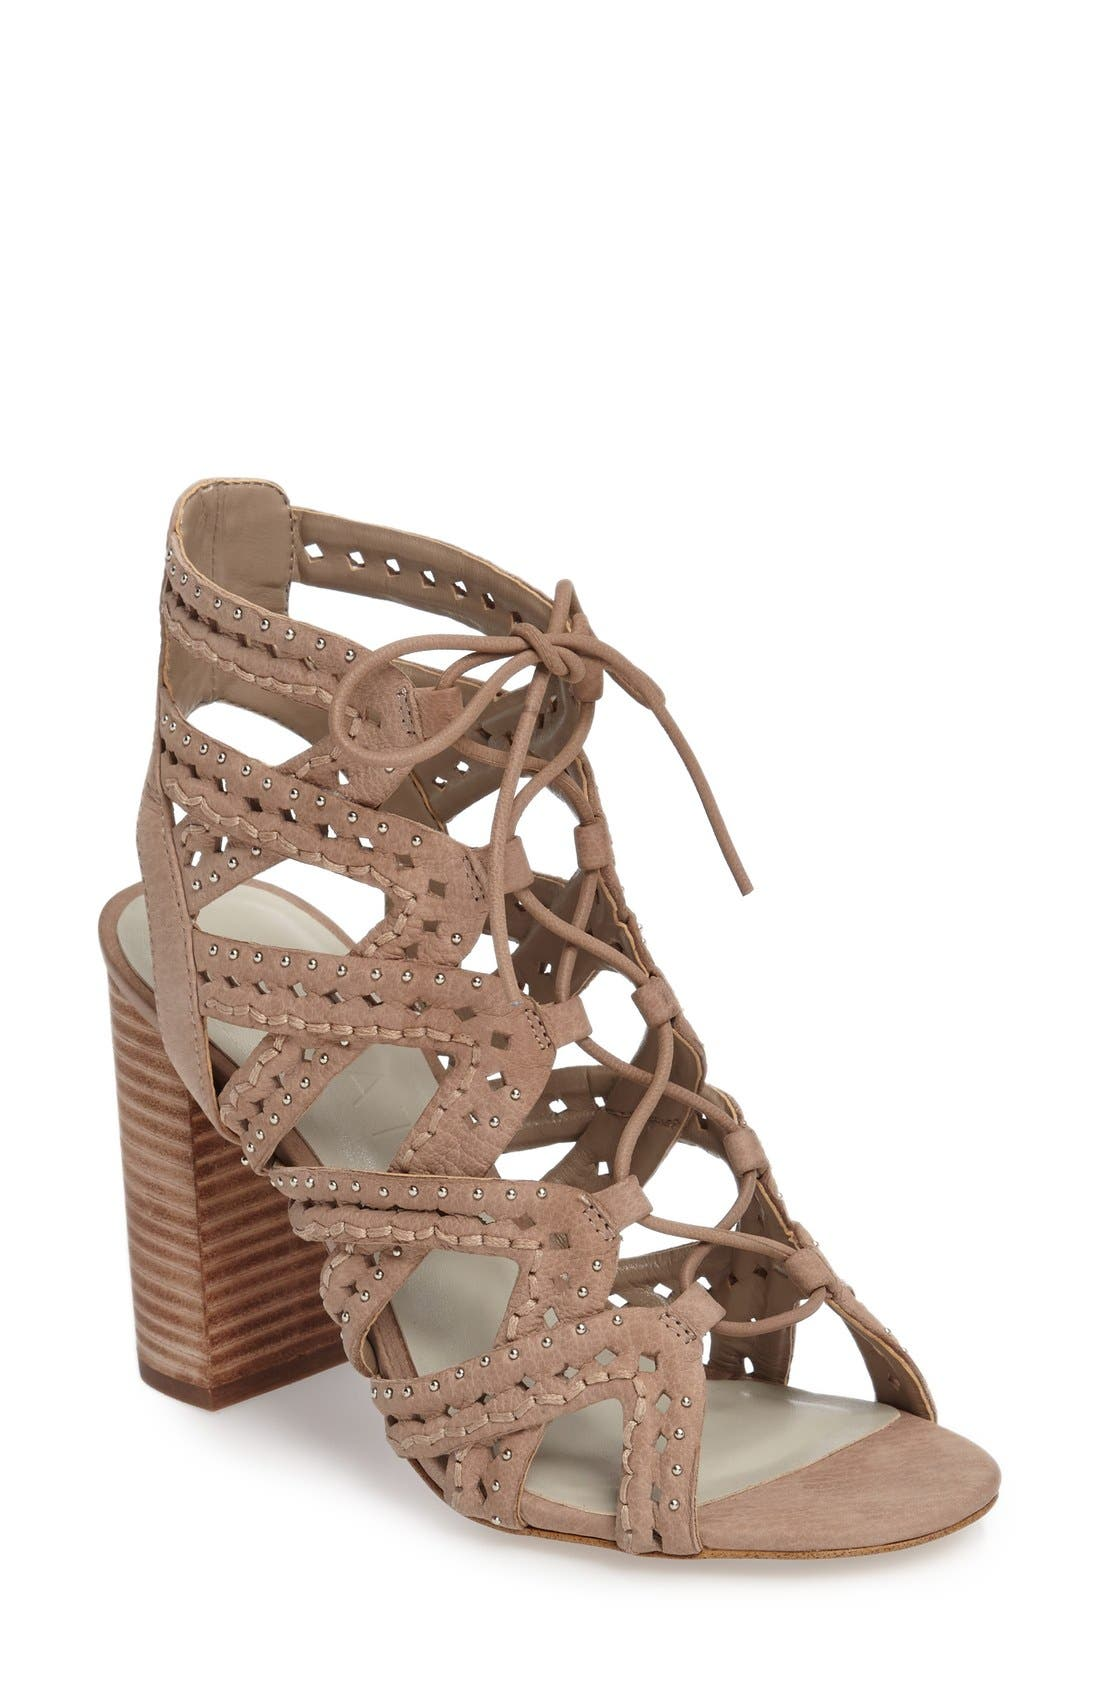 Alternate Image 1 Selected - 1.STATE Kayley Sandal (Women)